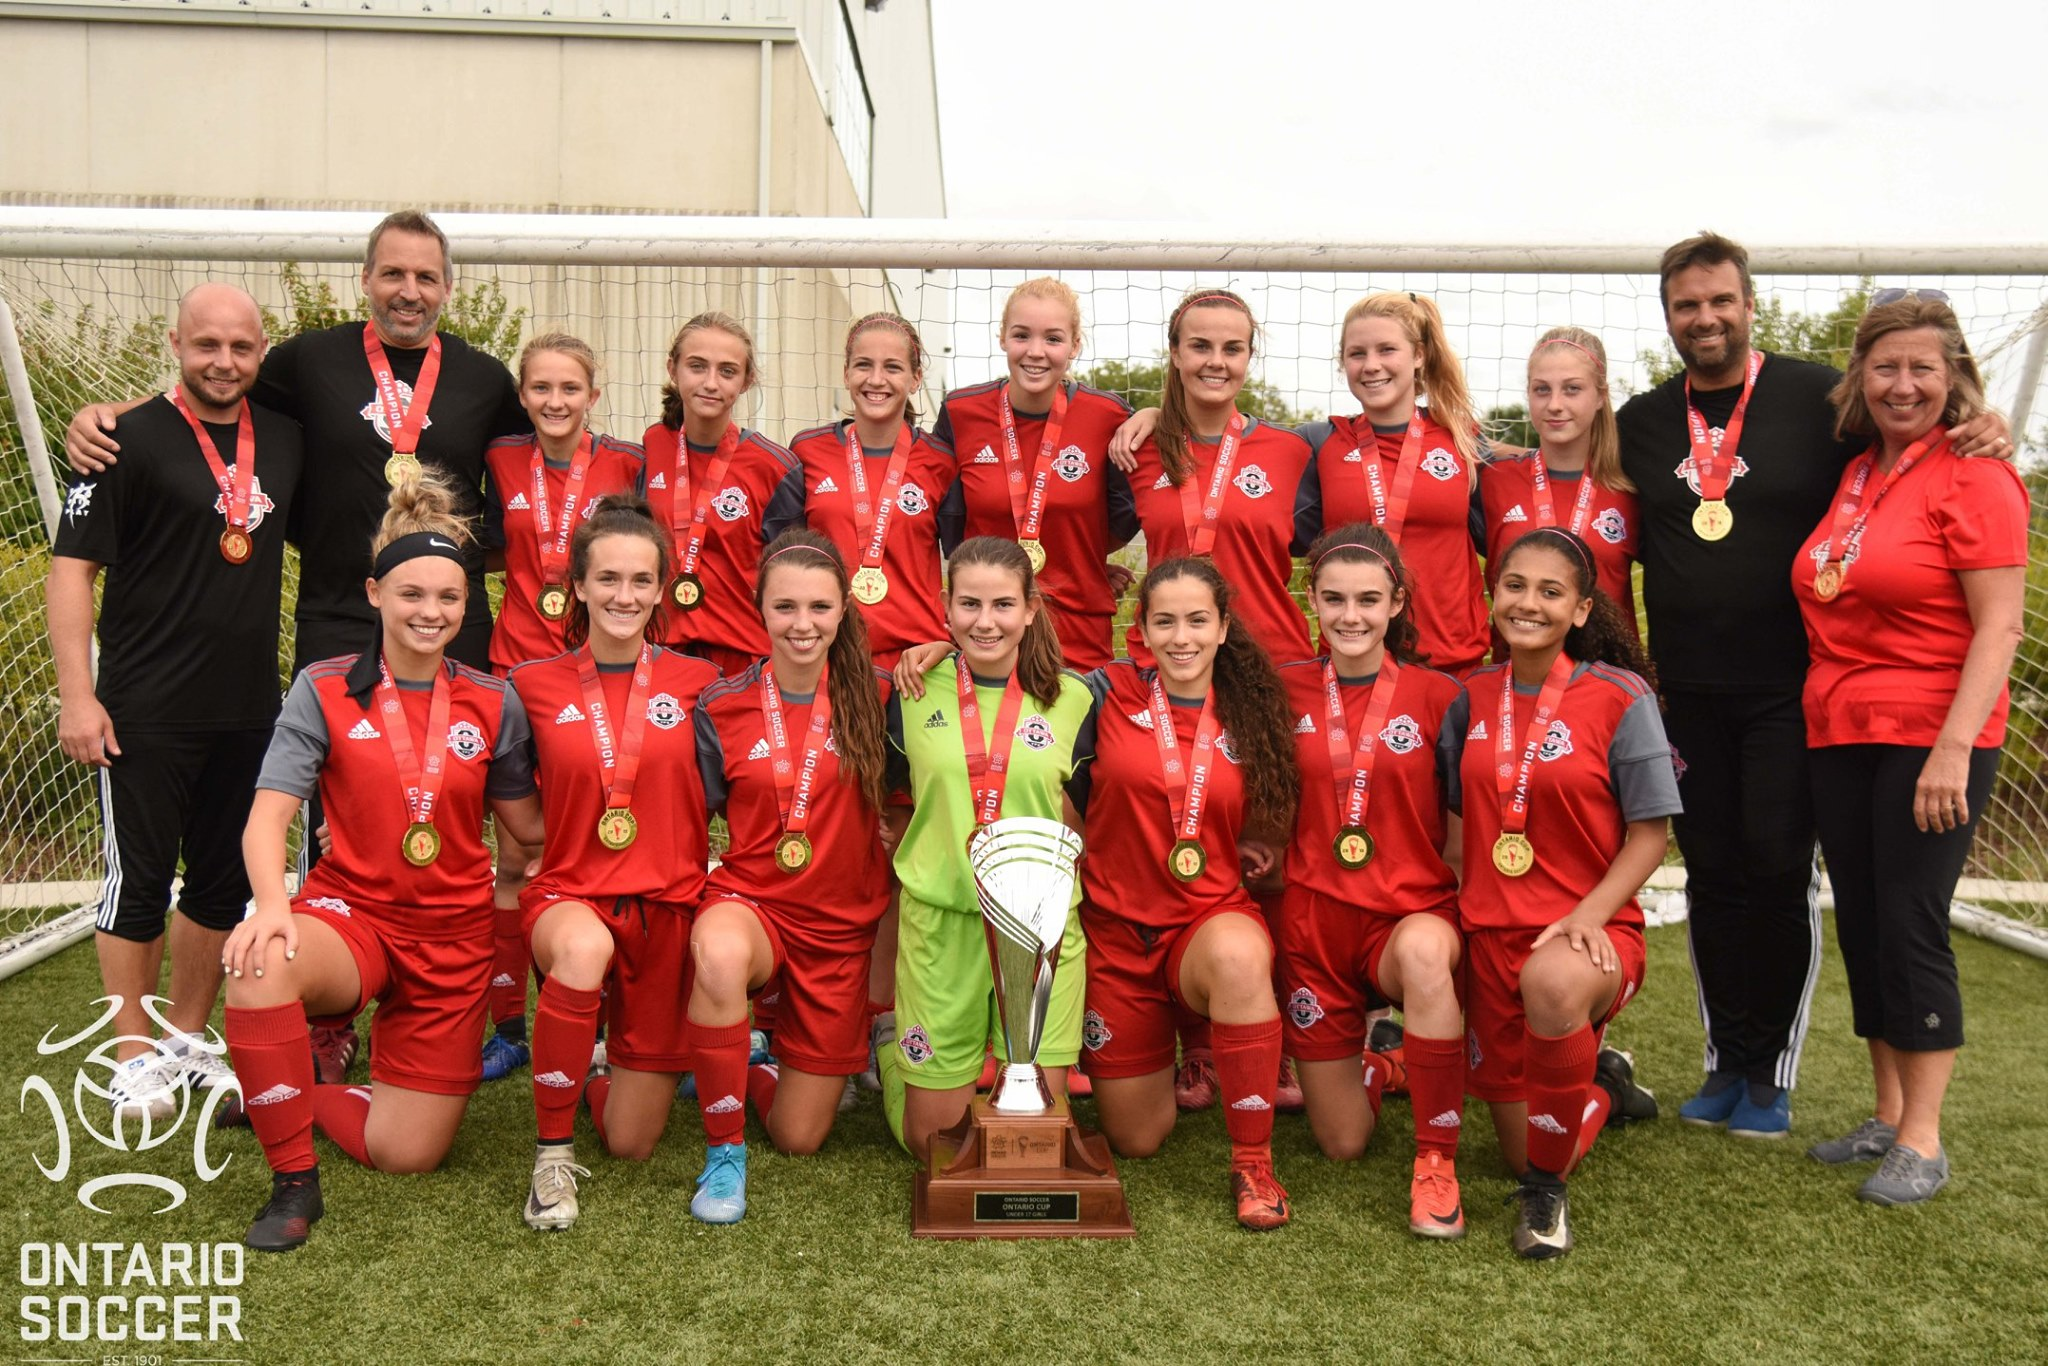 OttawaTFC U17 Girls are off to NATIONALS!